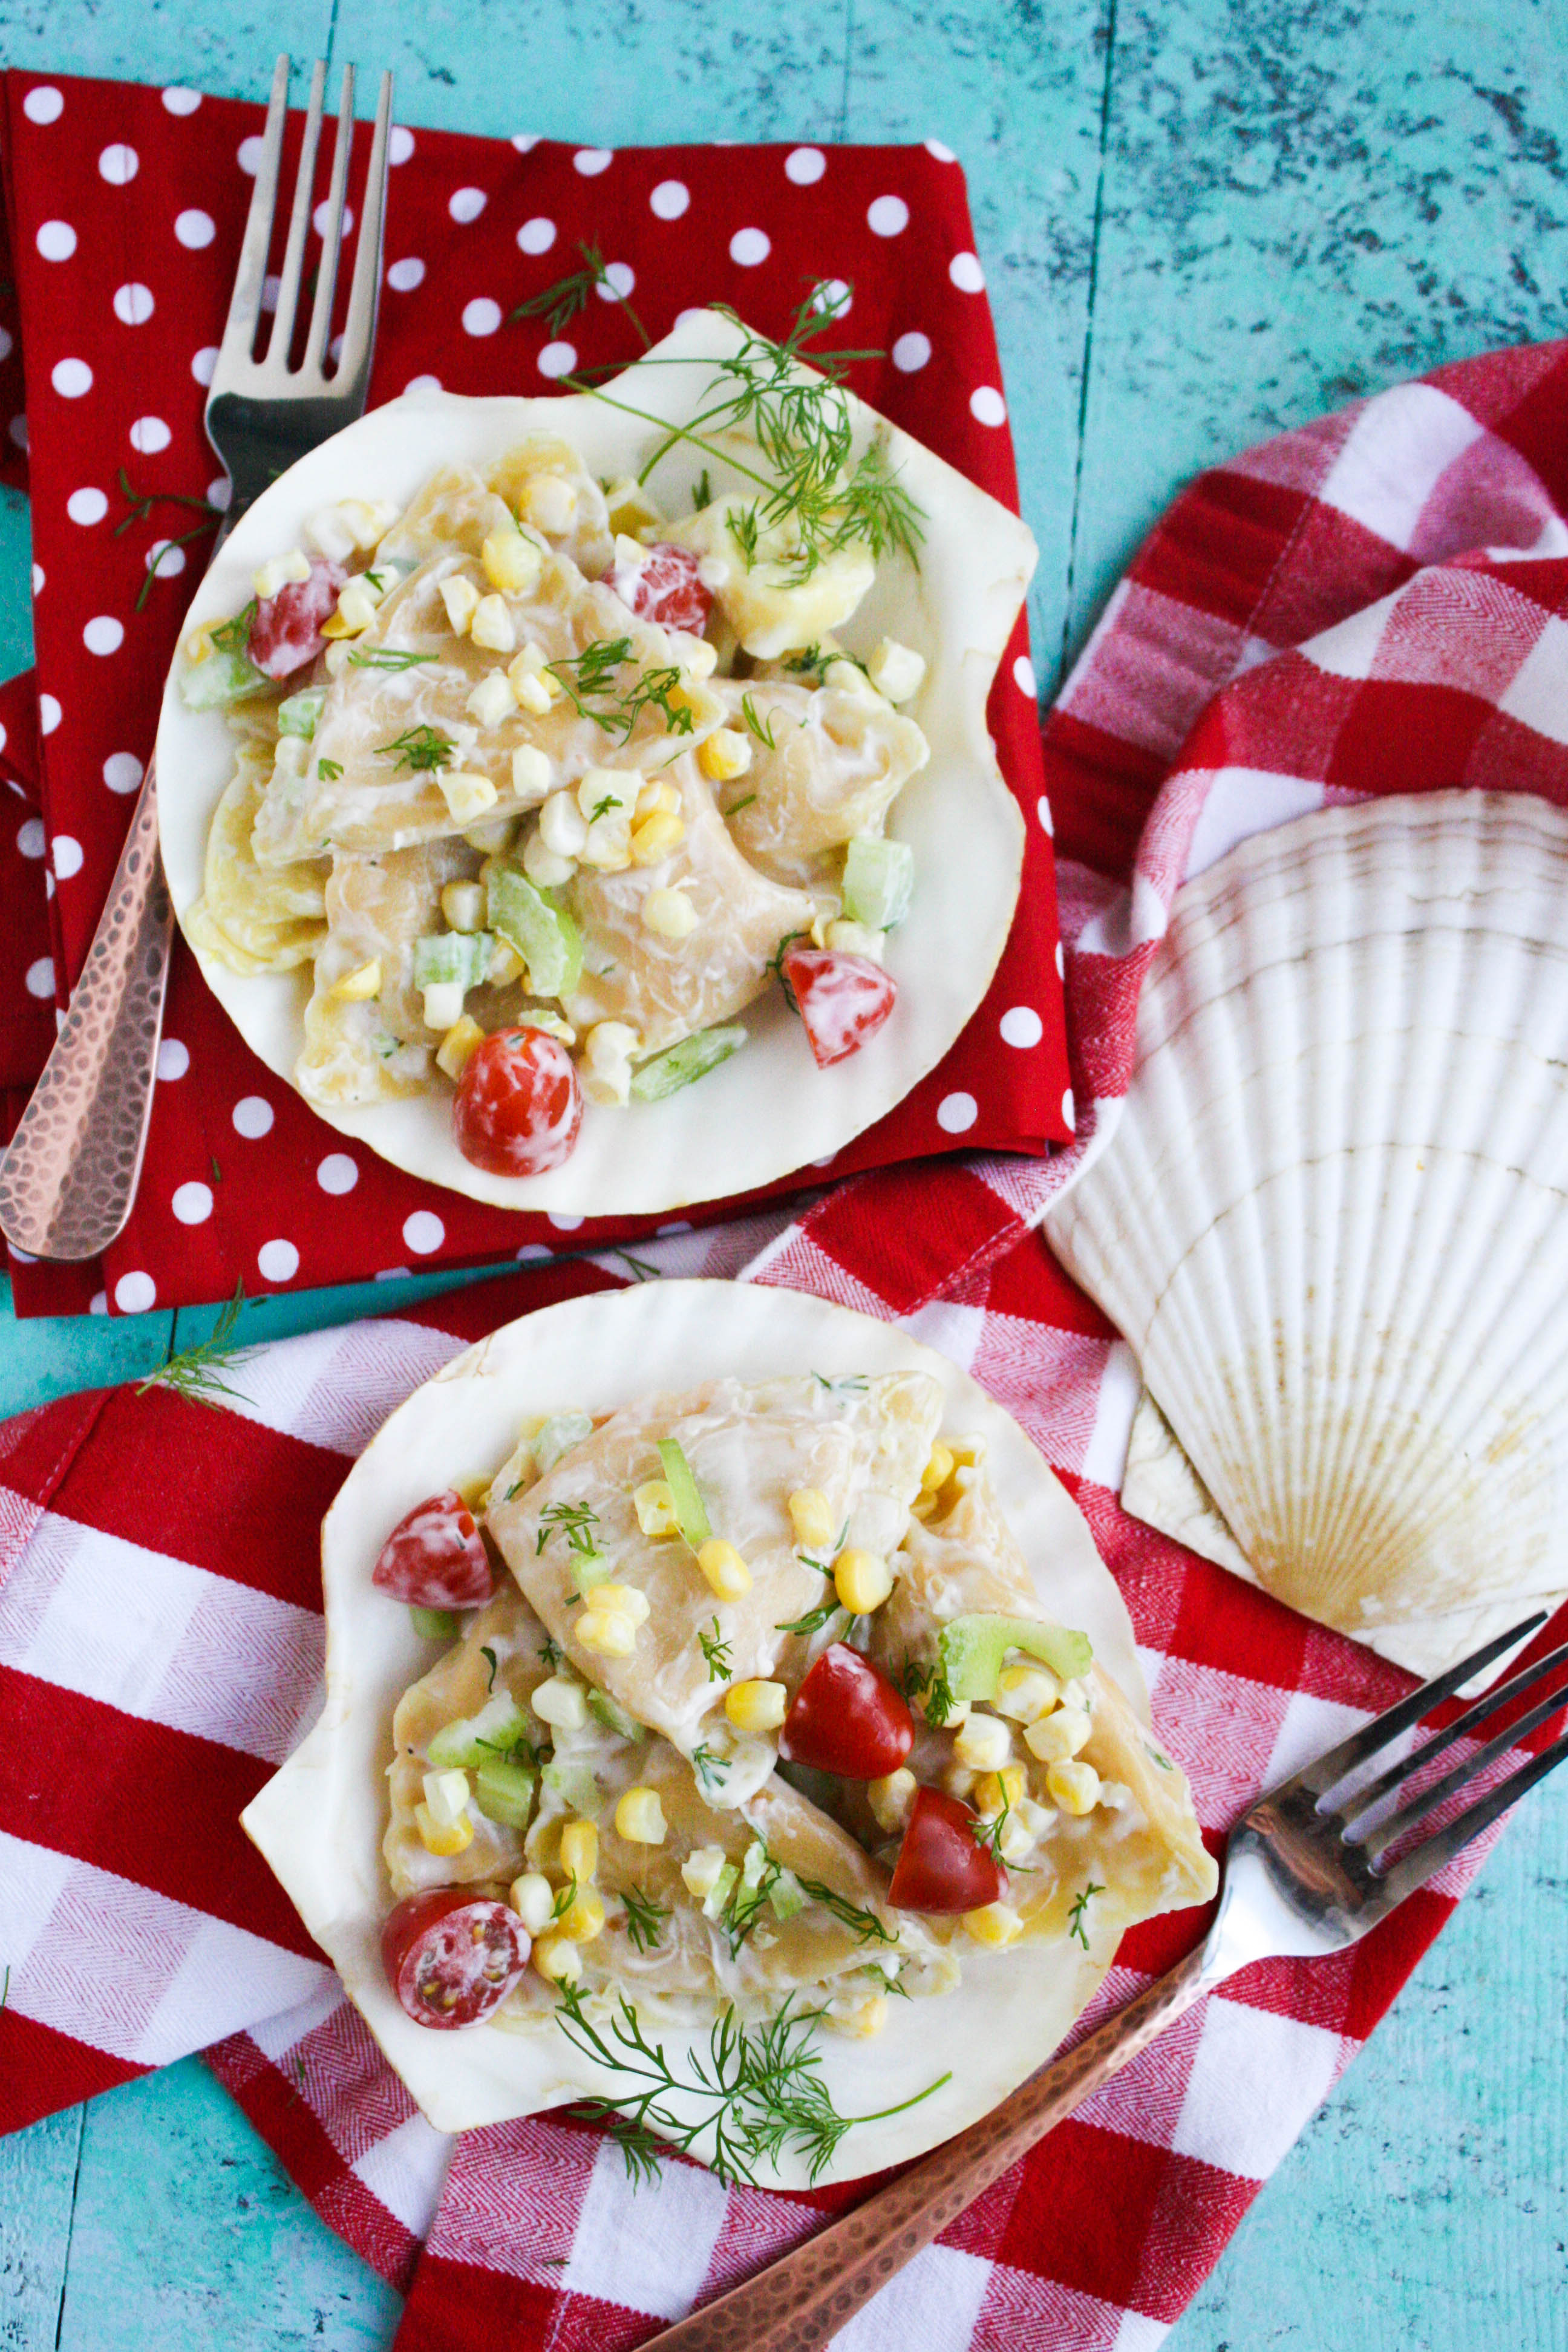 Lobster Ravioli Pasta Salad with Creamy Lemon Dressing is a lovely summer dish. Lobster Ravioli Pasta Salad with Creamy Lemon Dressing is a nice dish for a summer gathering.